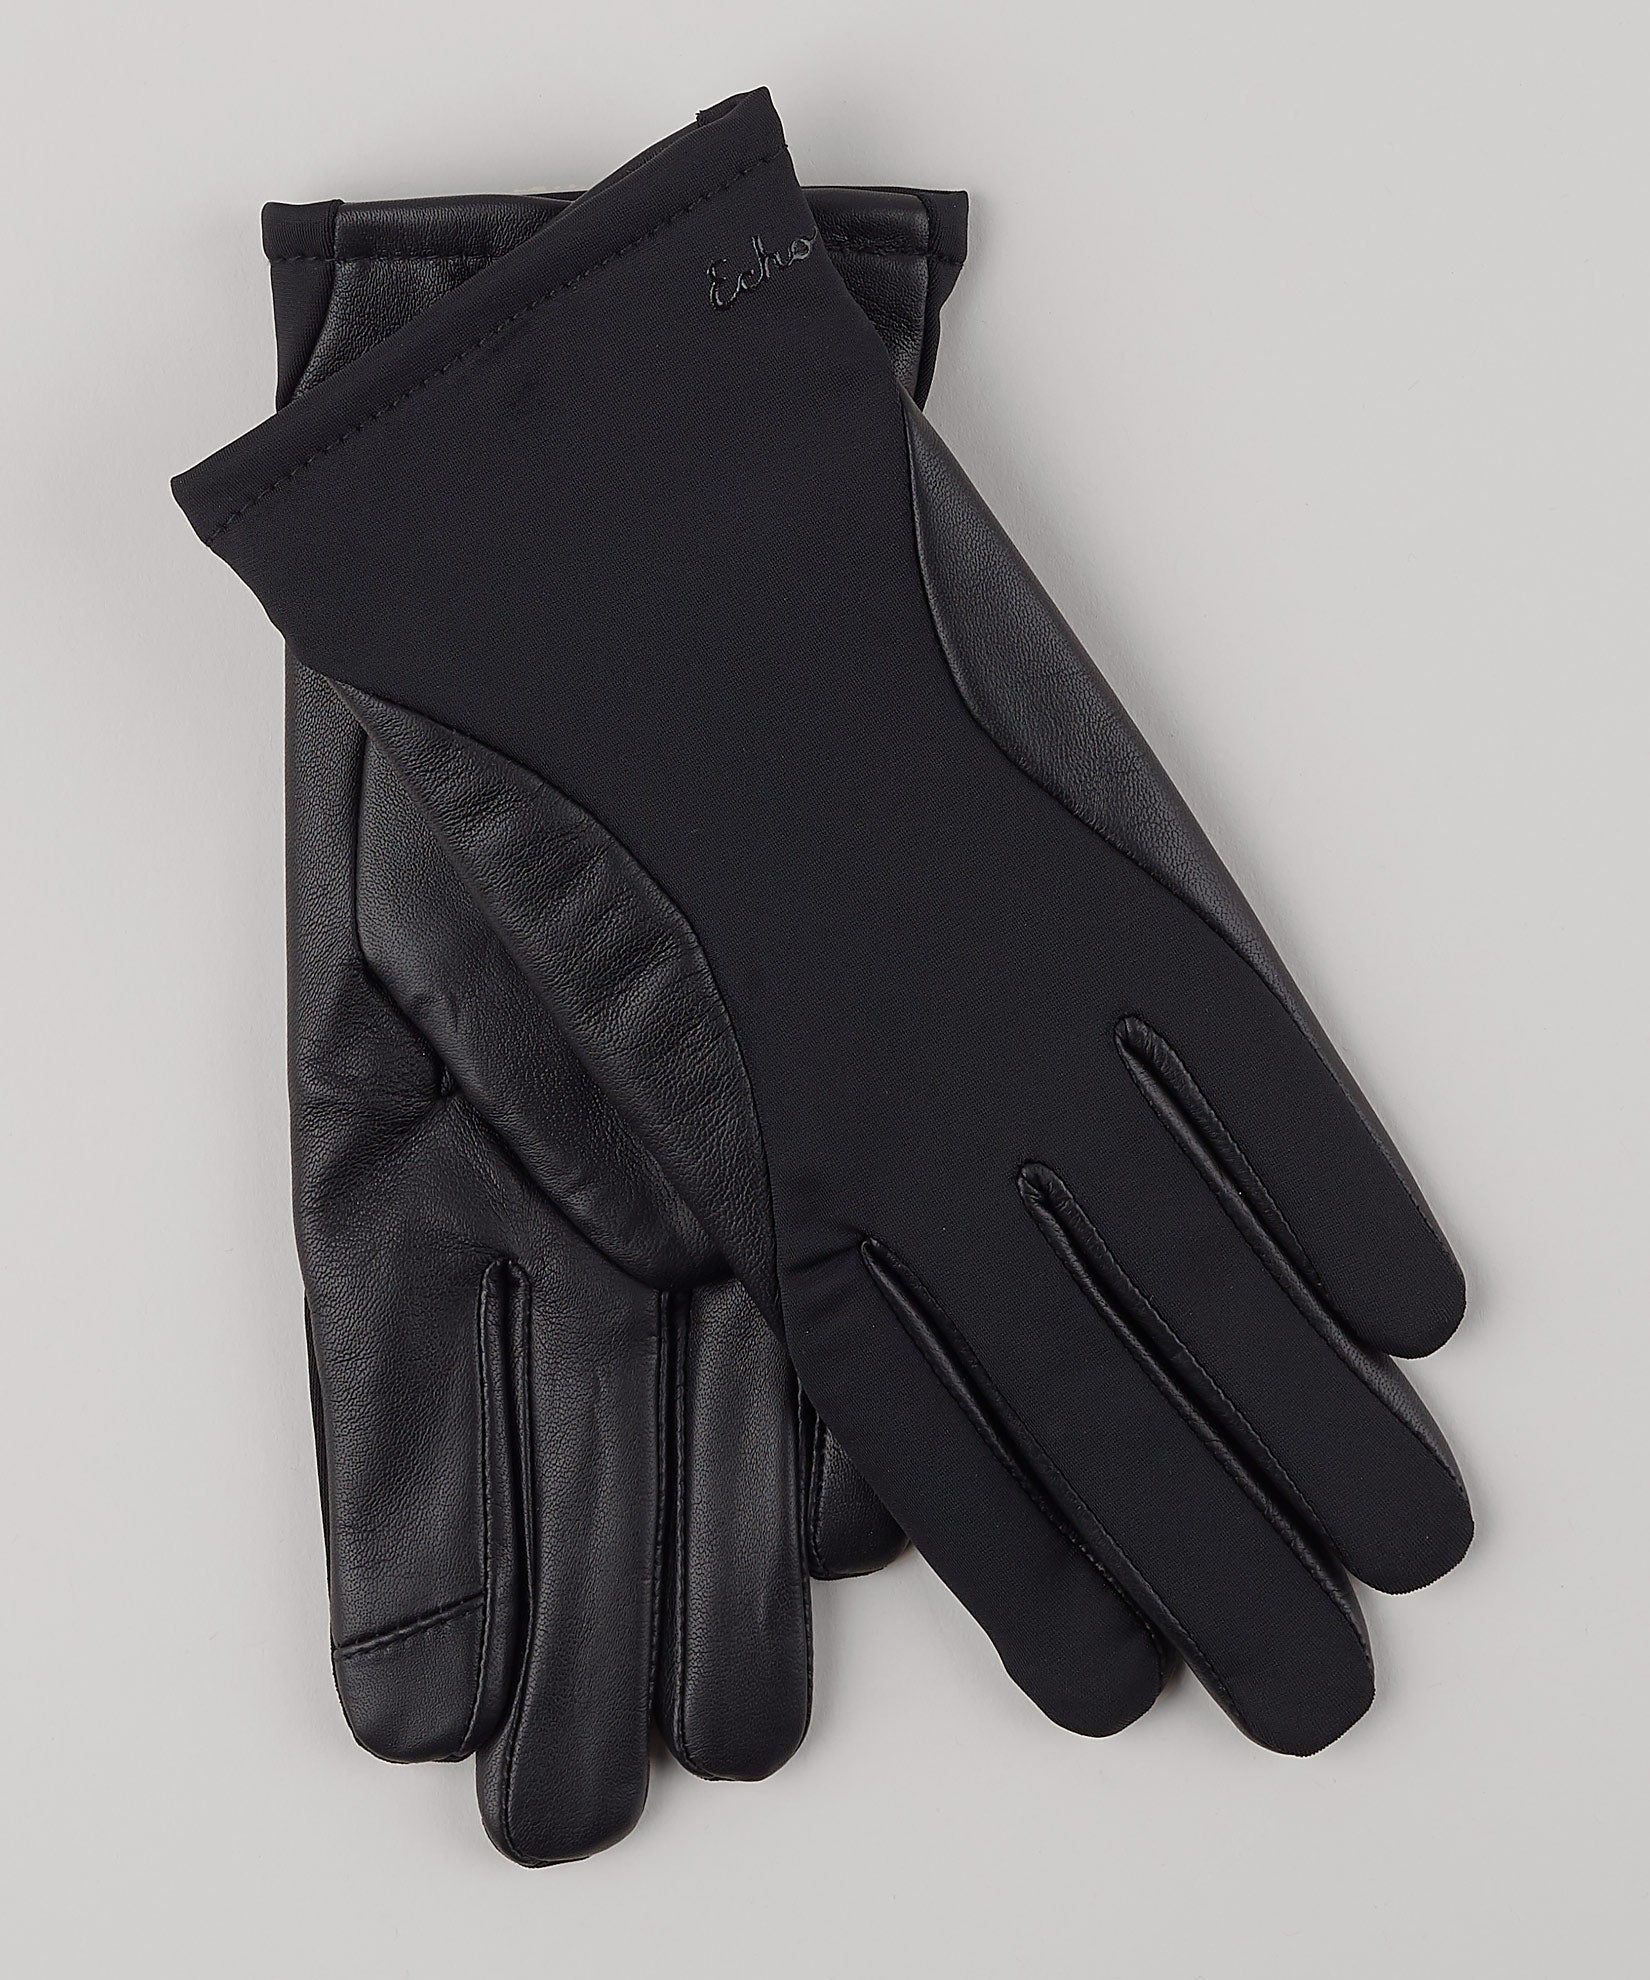 Black - Contour Leather Superfit Glove